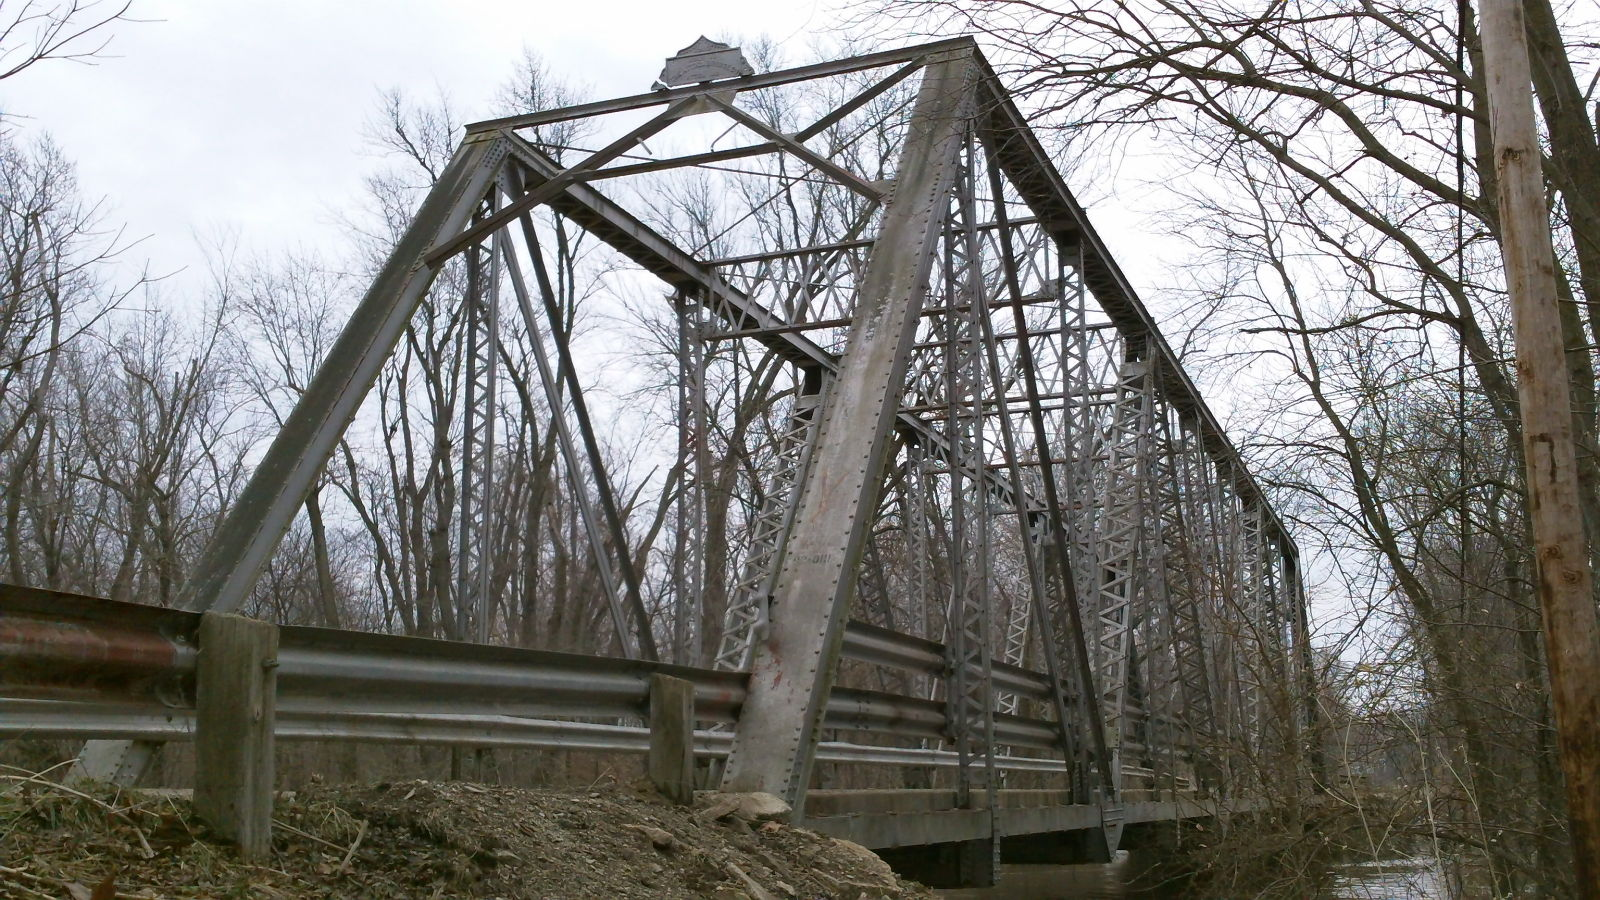 Illinois vermilion county armstrong - South Portal